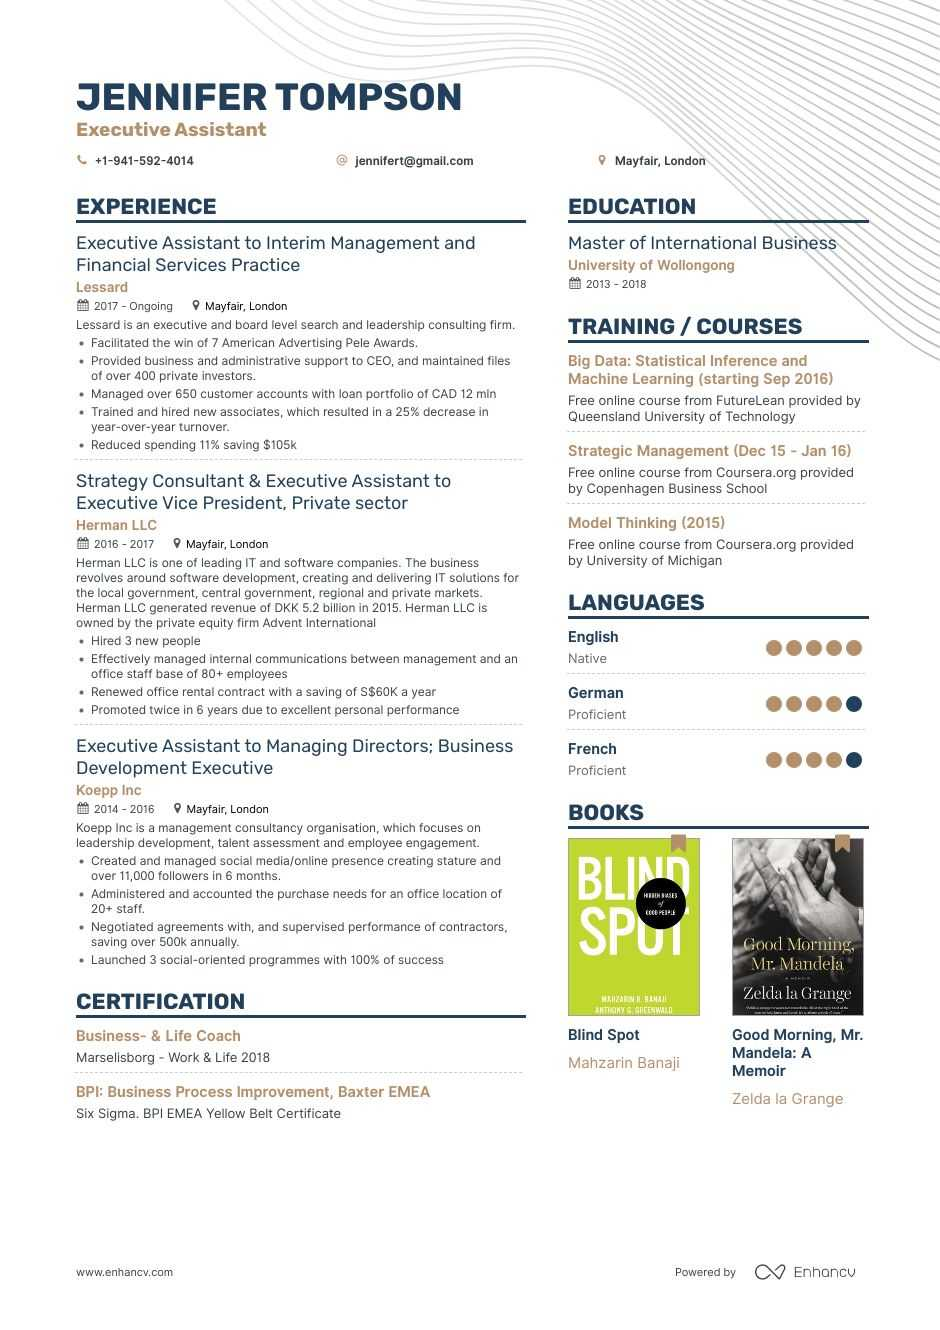 executive assistant resume samples step by guide for examples generated sap ewm sample Resume Executive Assistant Resume Examples 2020